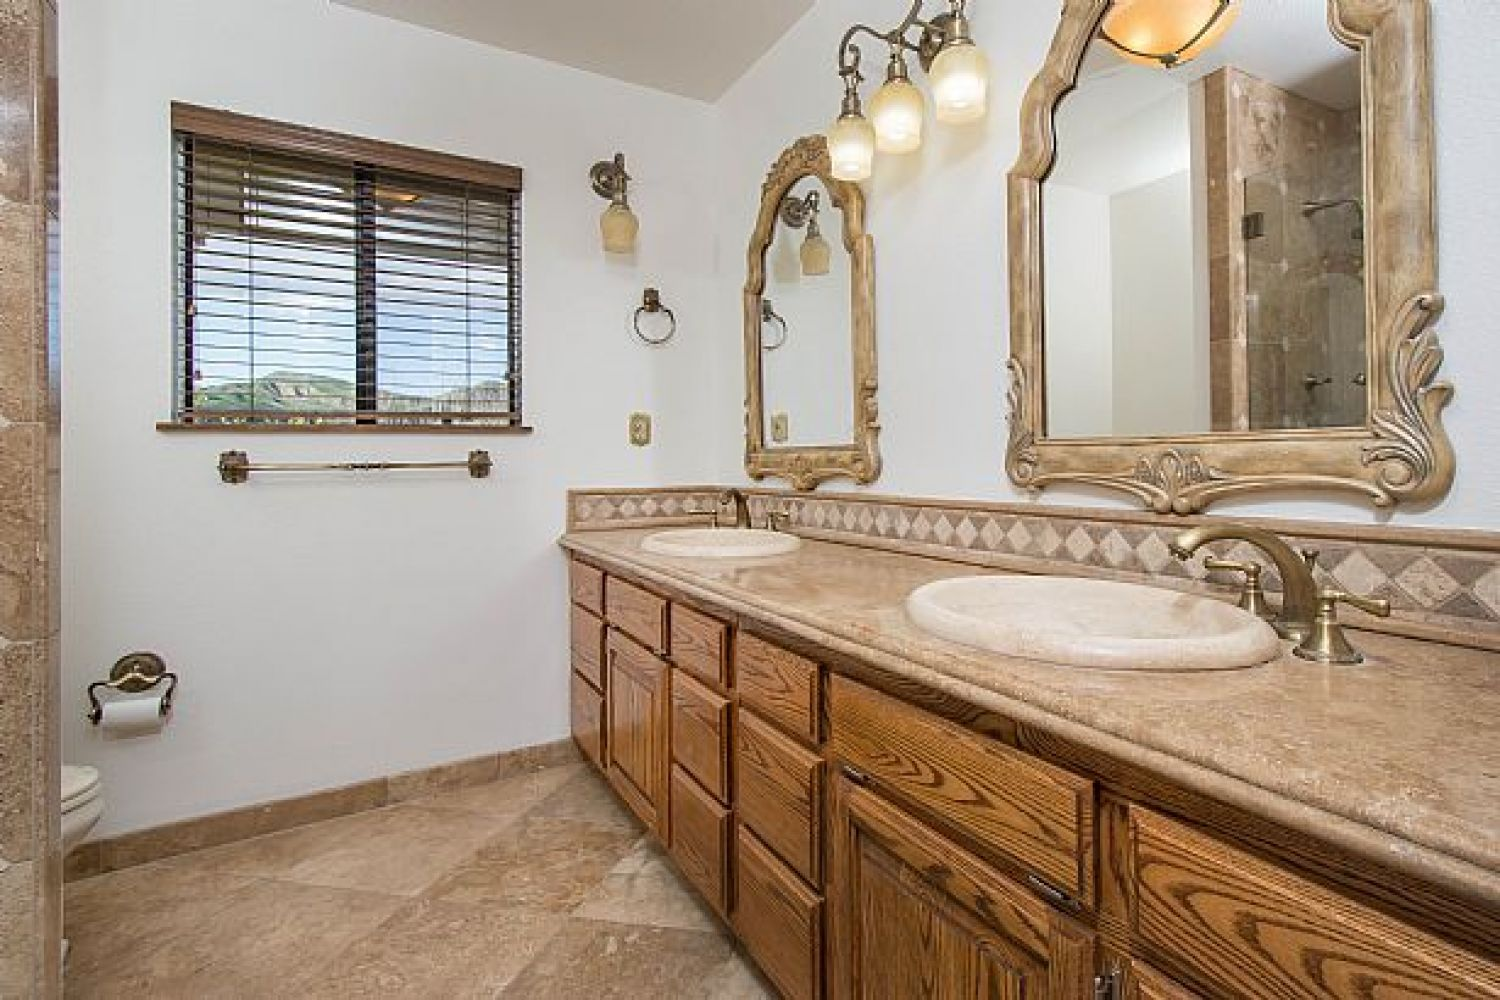 30510 Remington Rd | Photo 11